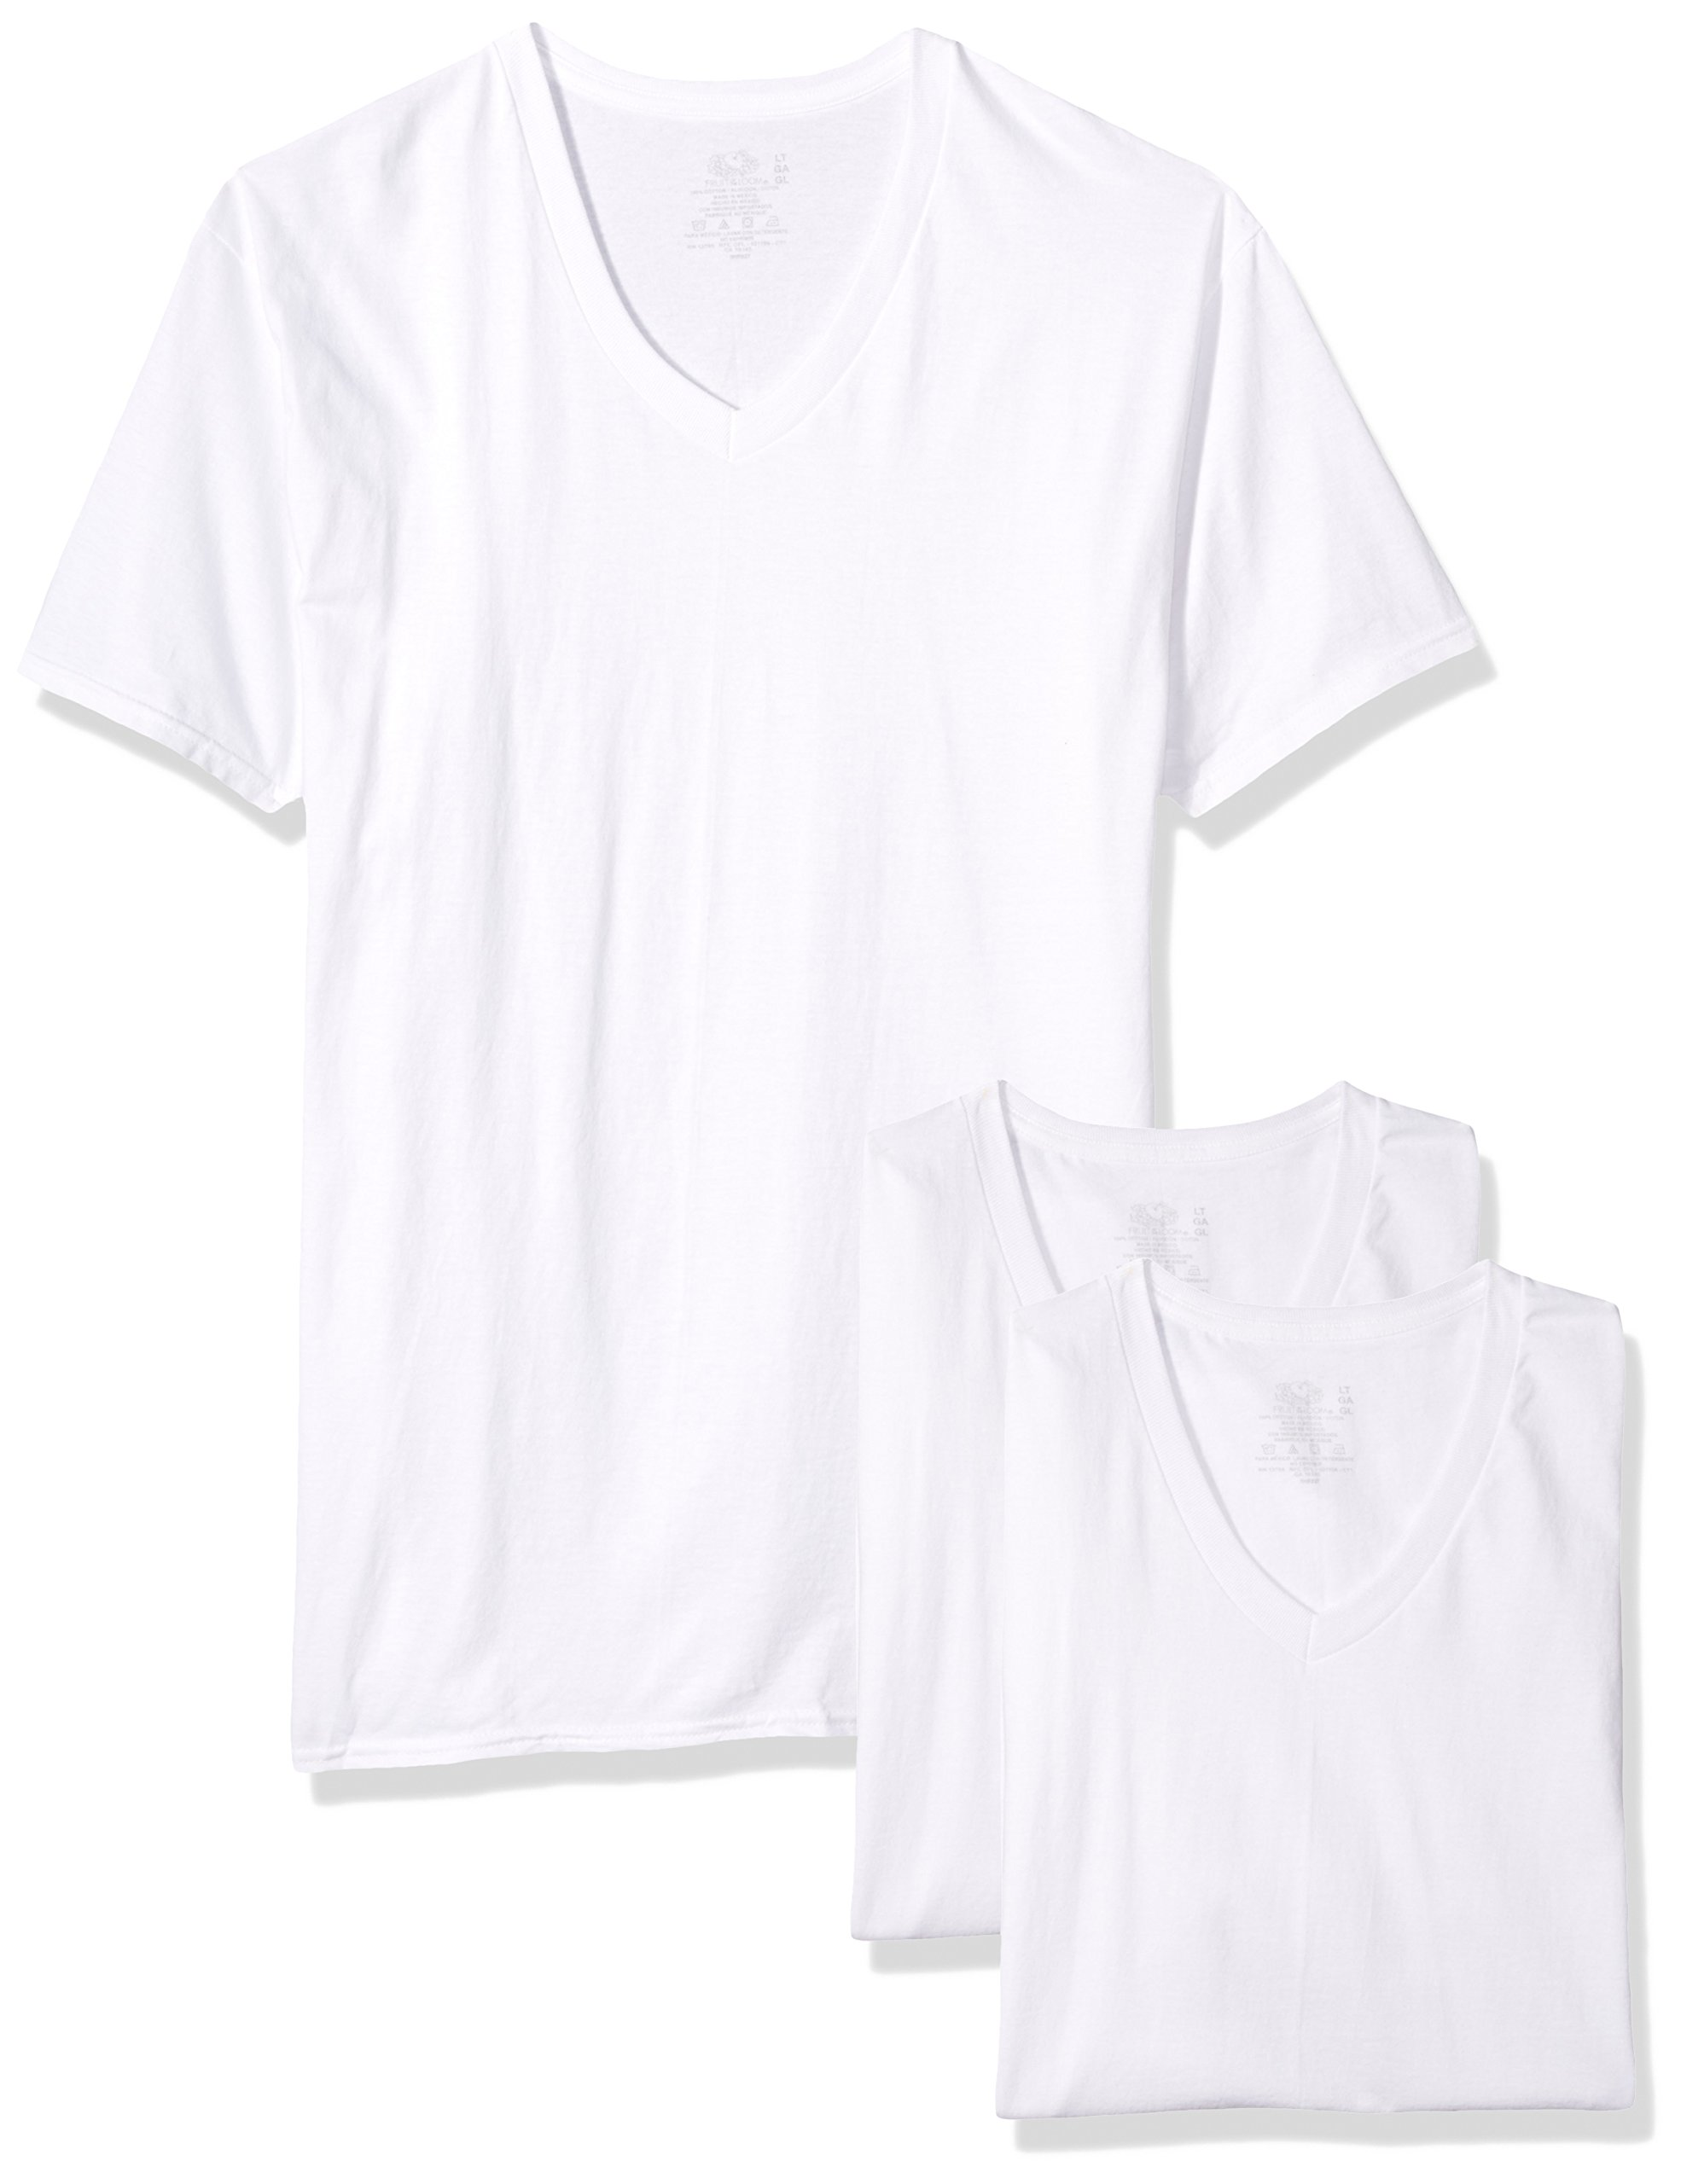 Fruit of the Loom Men's 3-Pack Tall Size V-Neck T-Shirt, White, L by Fruit of the Loom